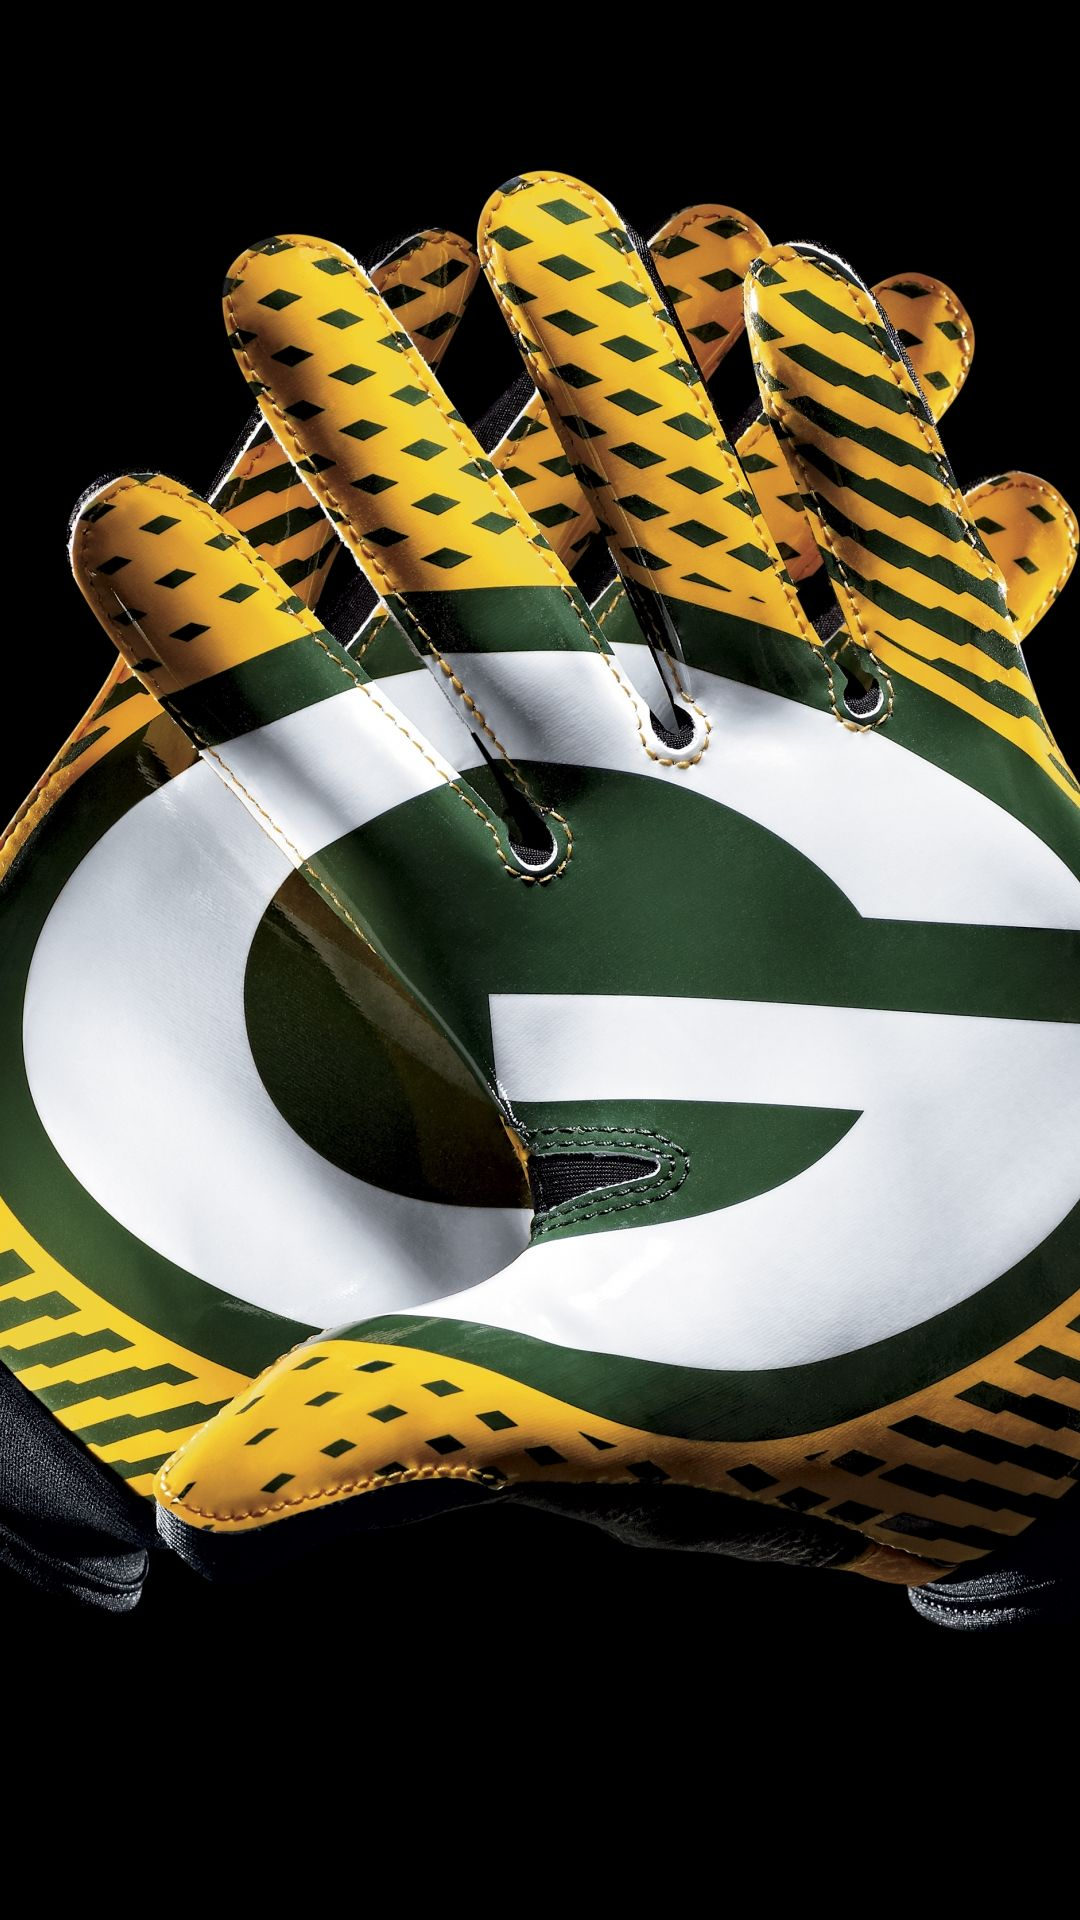 Green Bay Packers Wallpaper Download In 2020 Green Bay Packers Wallpaper Green Bay Packers Green Bay